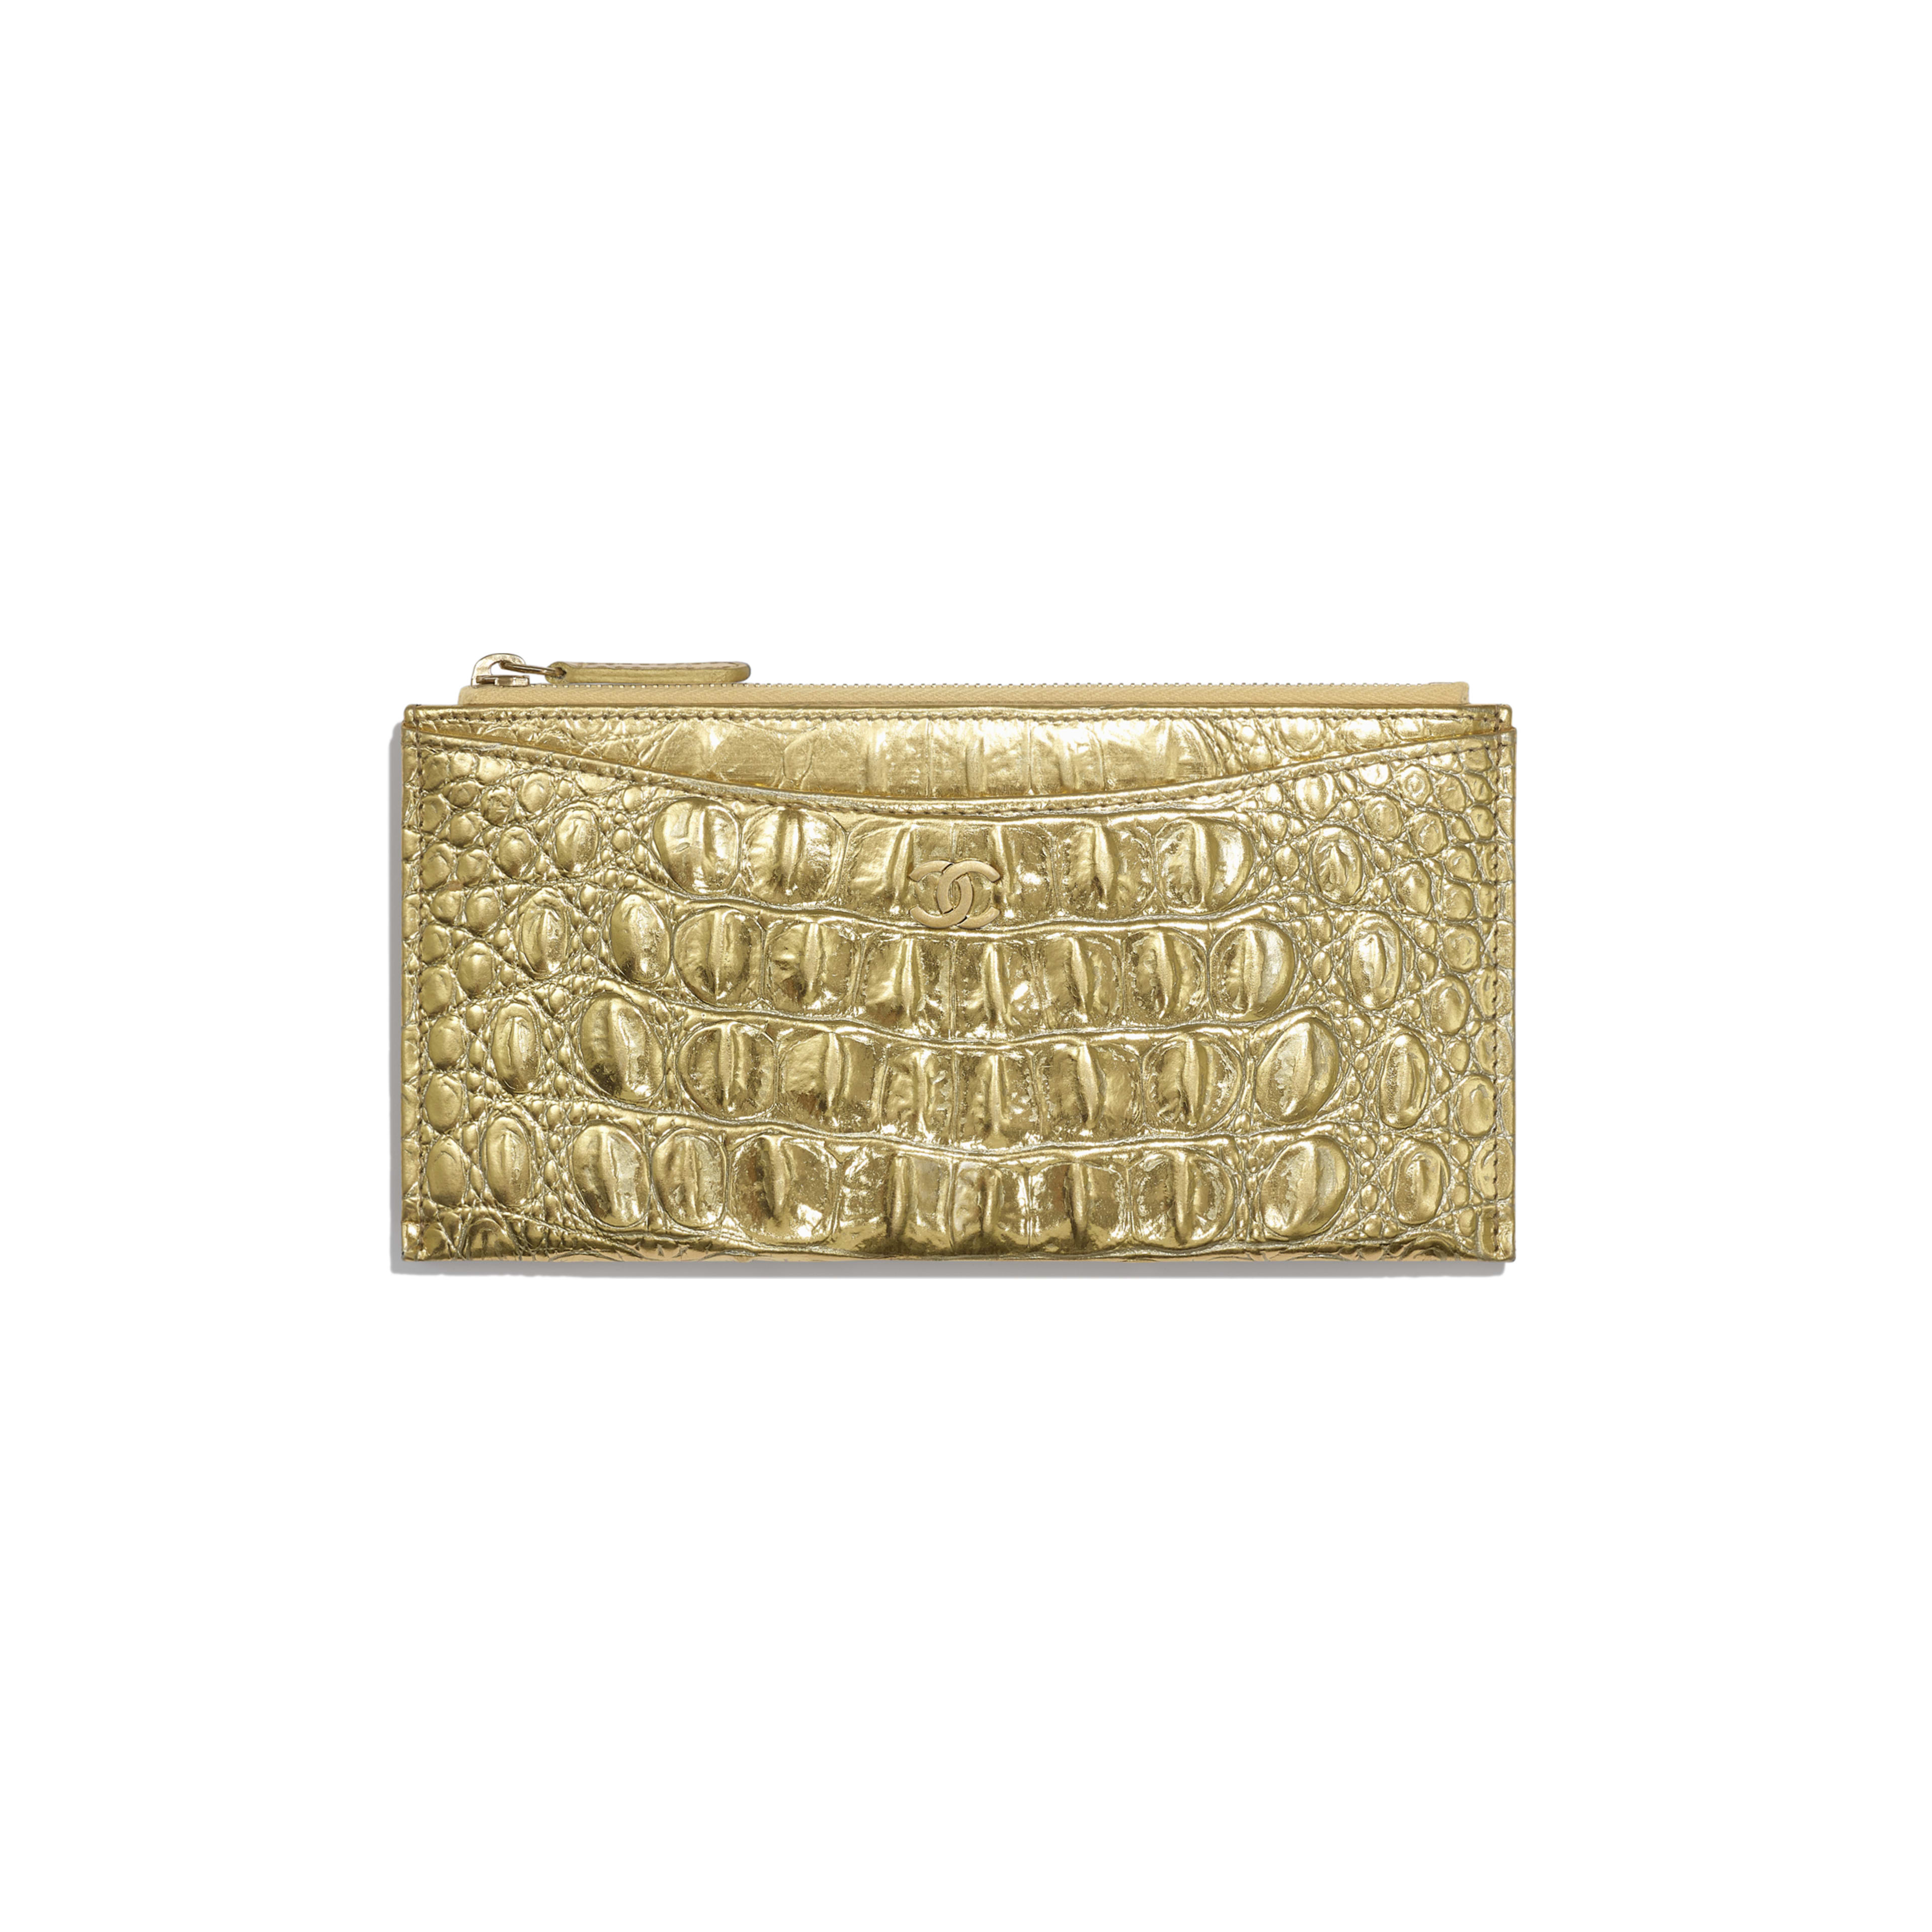 Classic Pouch - Gold - Metallic Crocodile Embossed Calfskin & Gold Metal - Default view - see full sized version